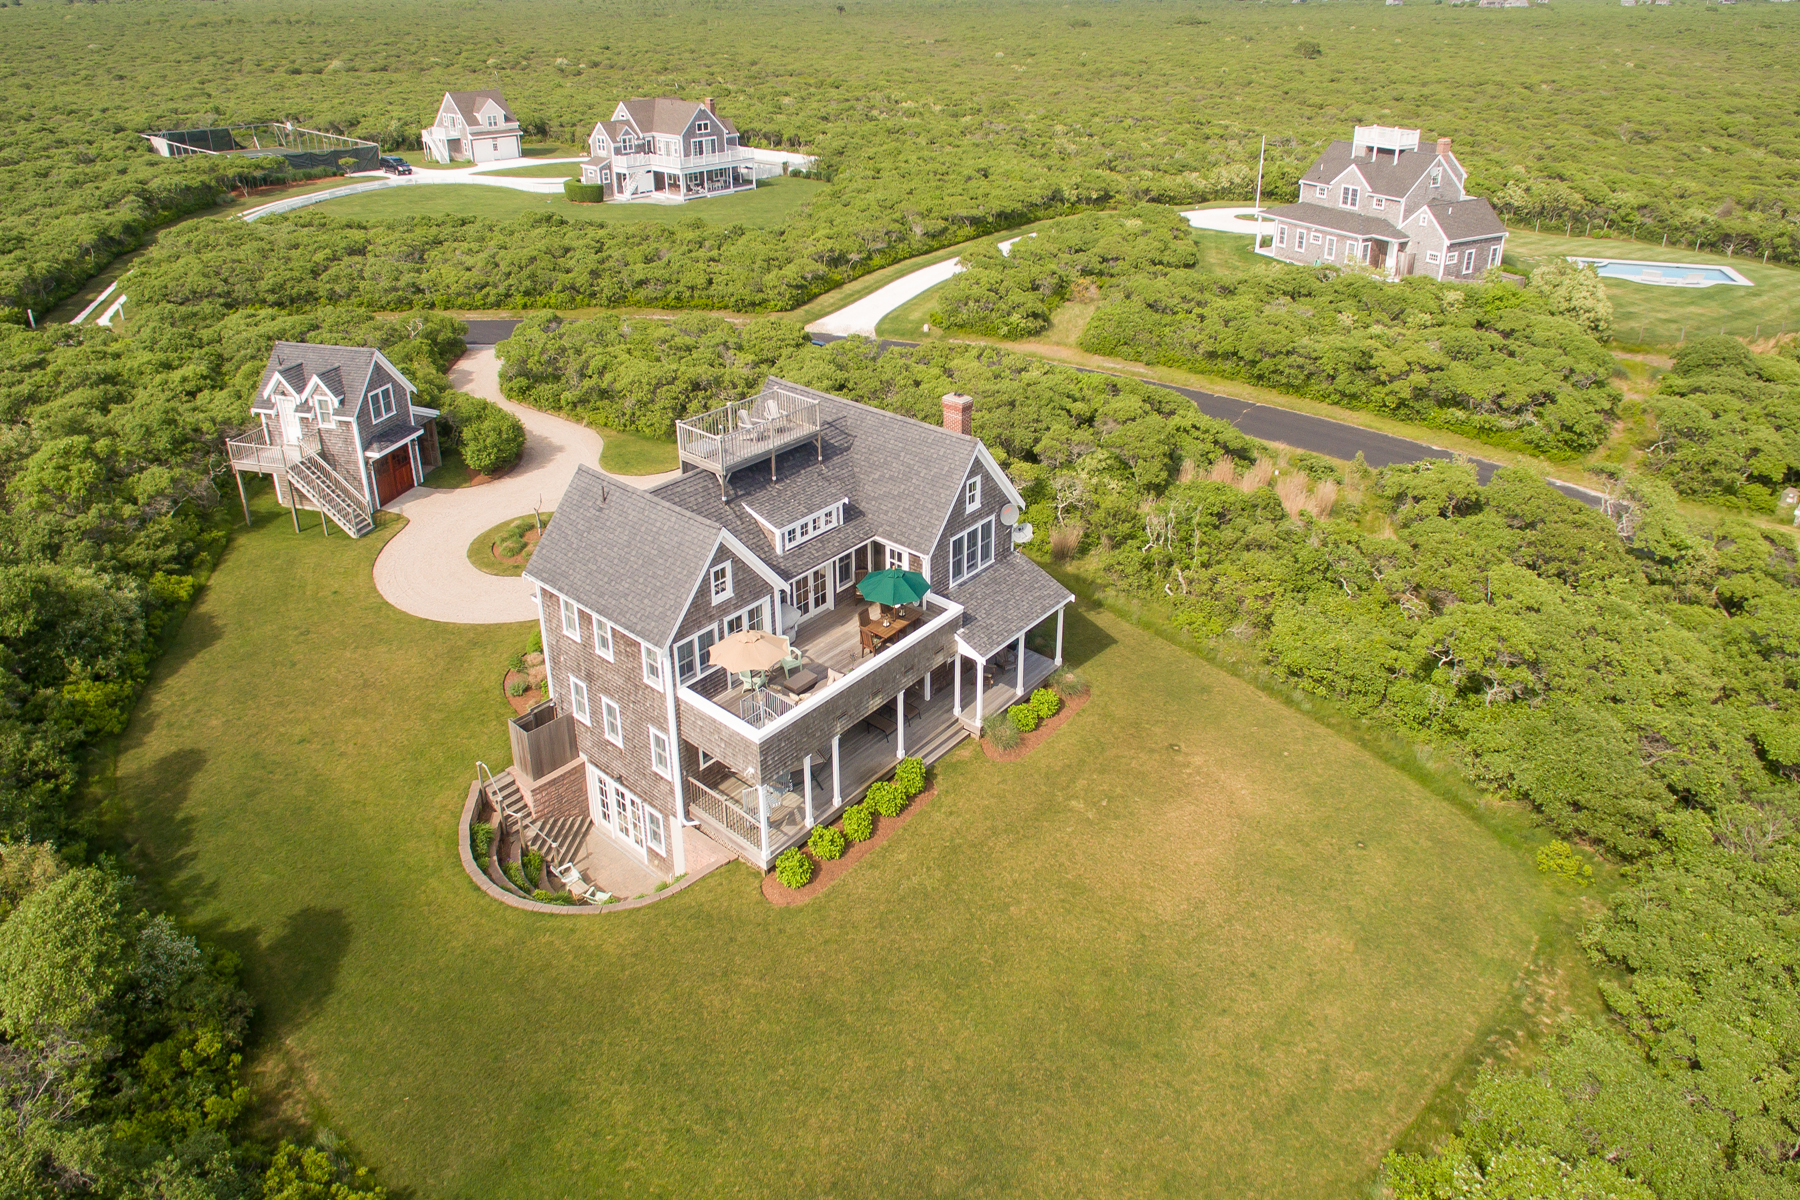 단독 가정 주택 용 매매 에 Pristine, Private and Close to the Beach! 21 Wigwam Road Nantucket, 매사추세츠, 02554 미국